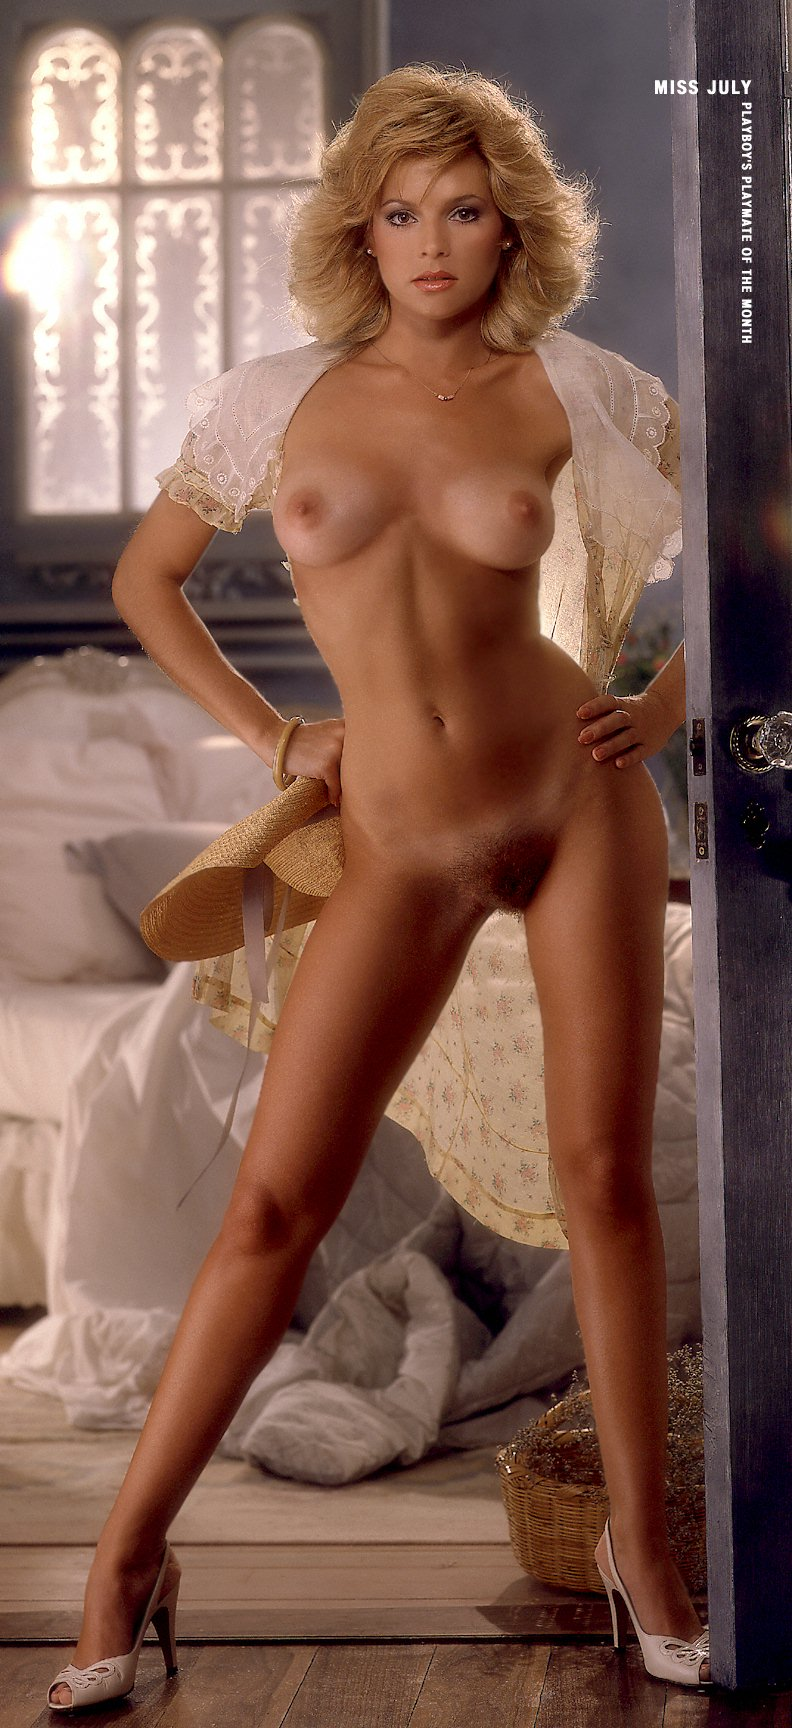 Jacqueline lord nude fake where can